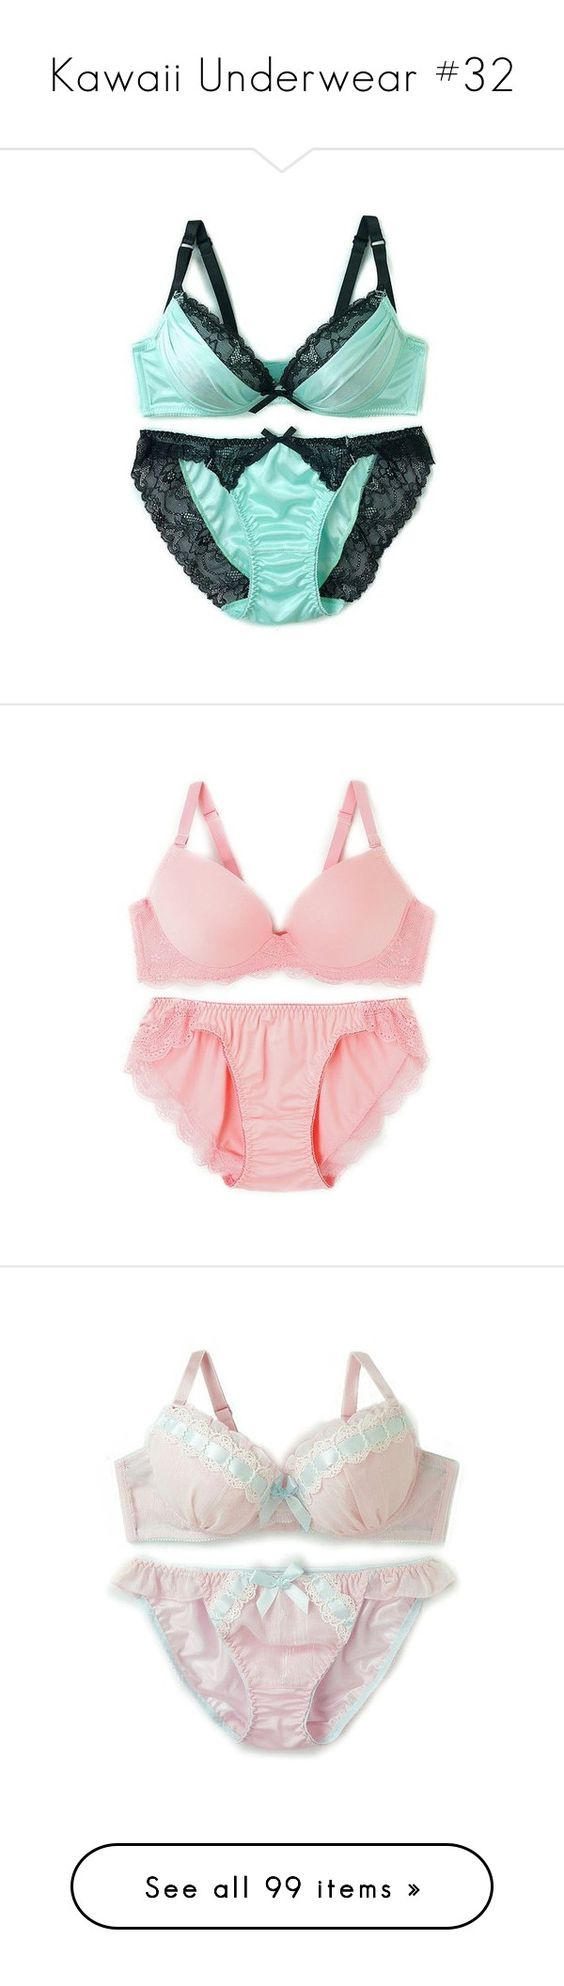 """Kawaii Underwear #32"" by yandereotaku ❤ liked on Polyvore featuring intimates"